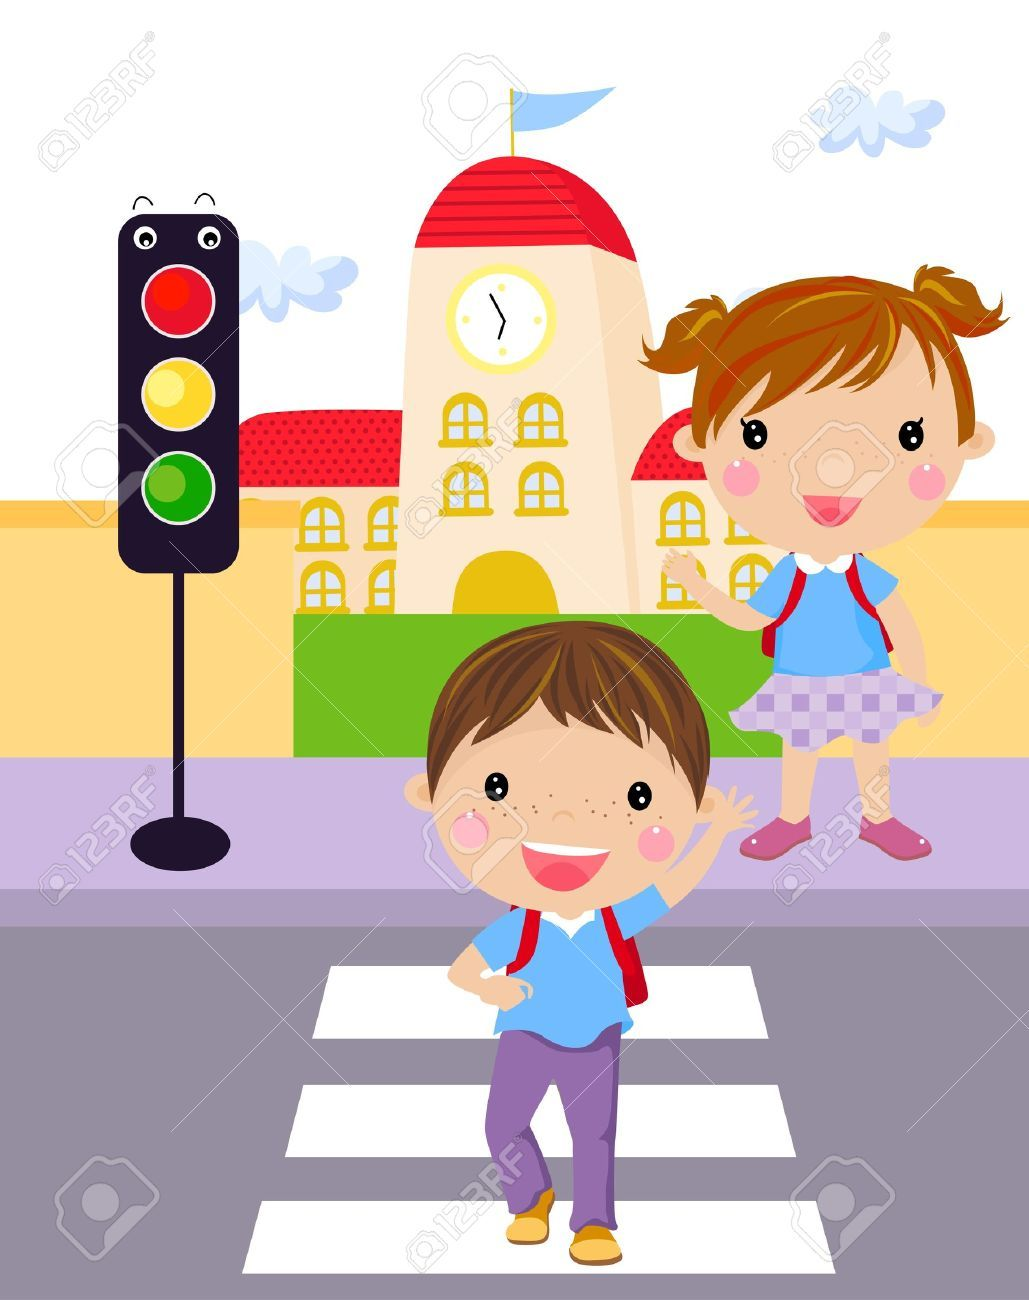 Children crossing the street clipart clipart black and white download Children crossing the street clipart 6 » Clipart Portal clipart black and white download